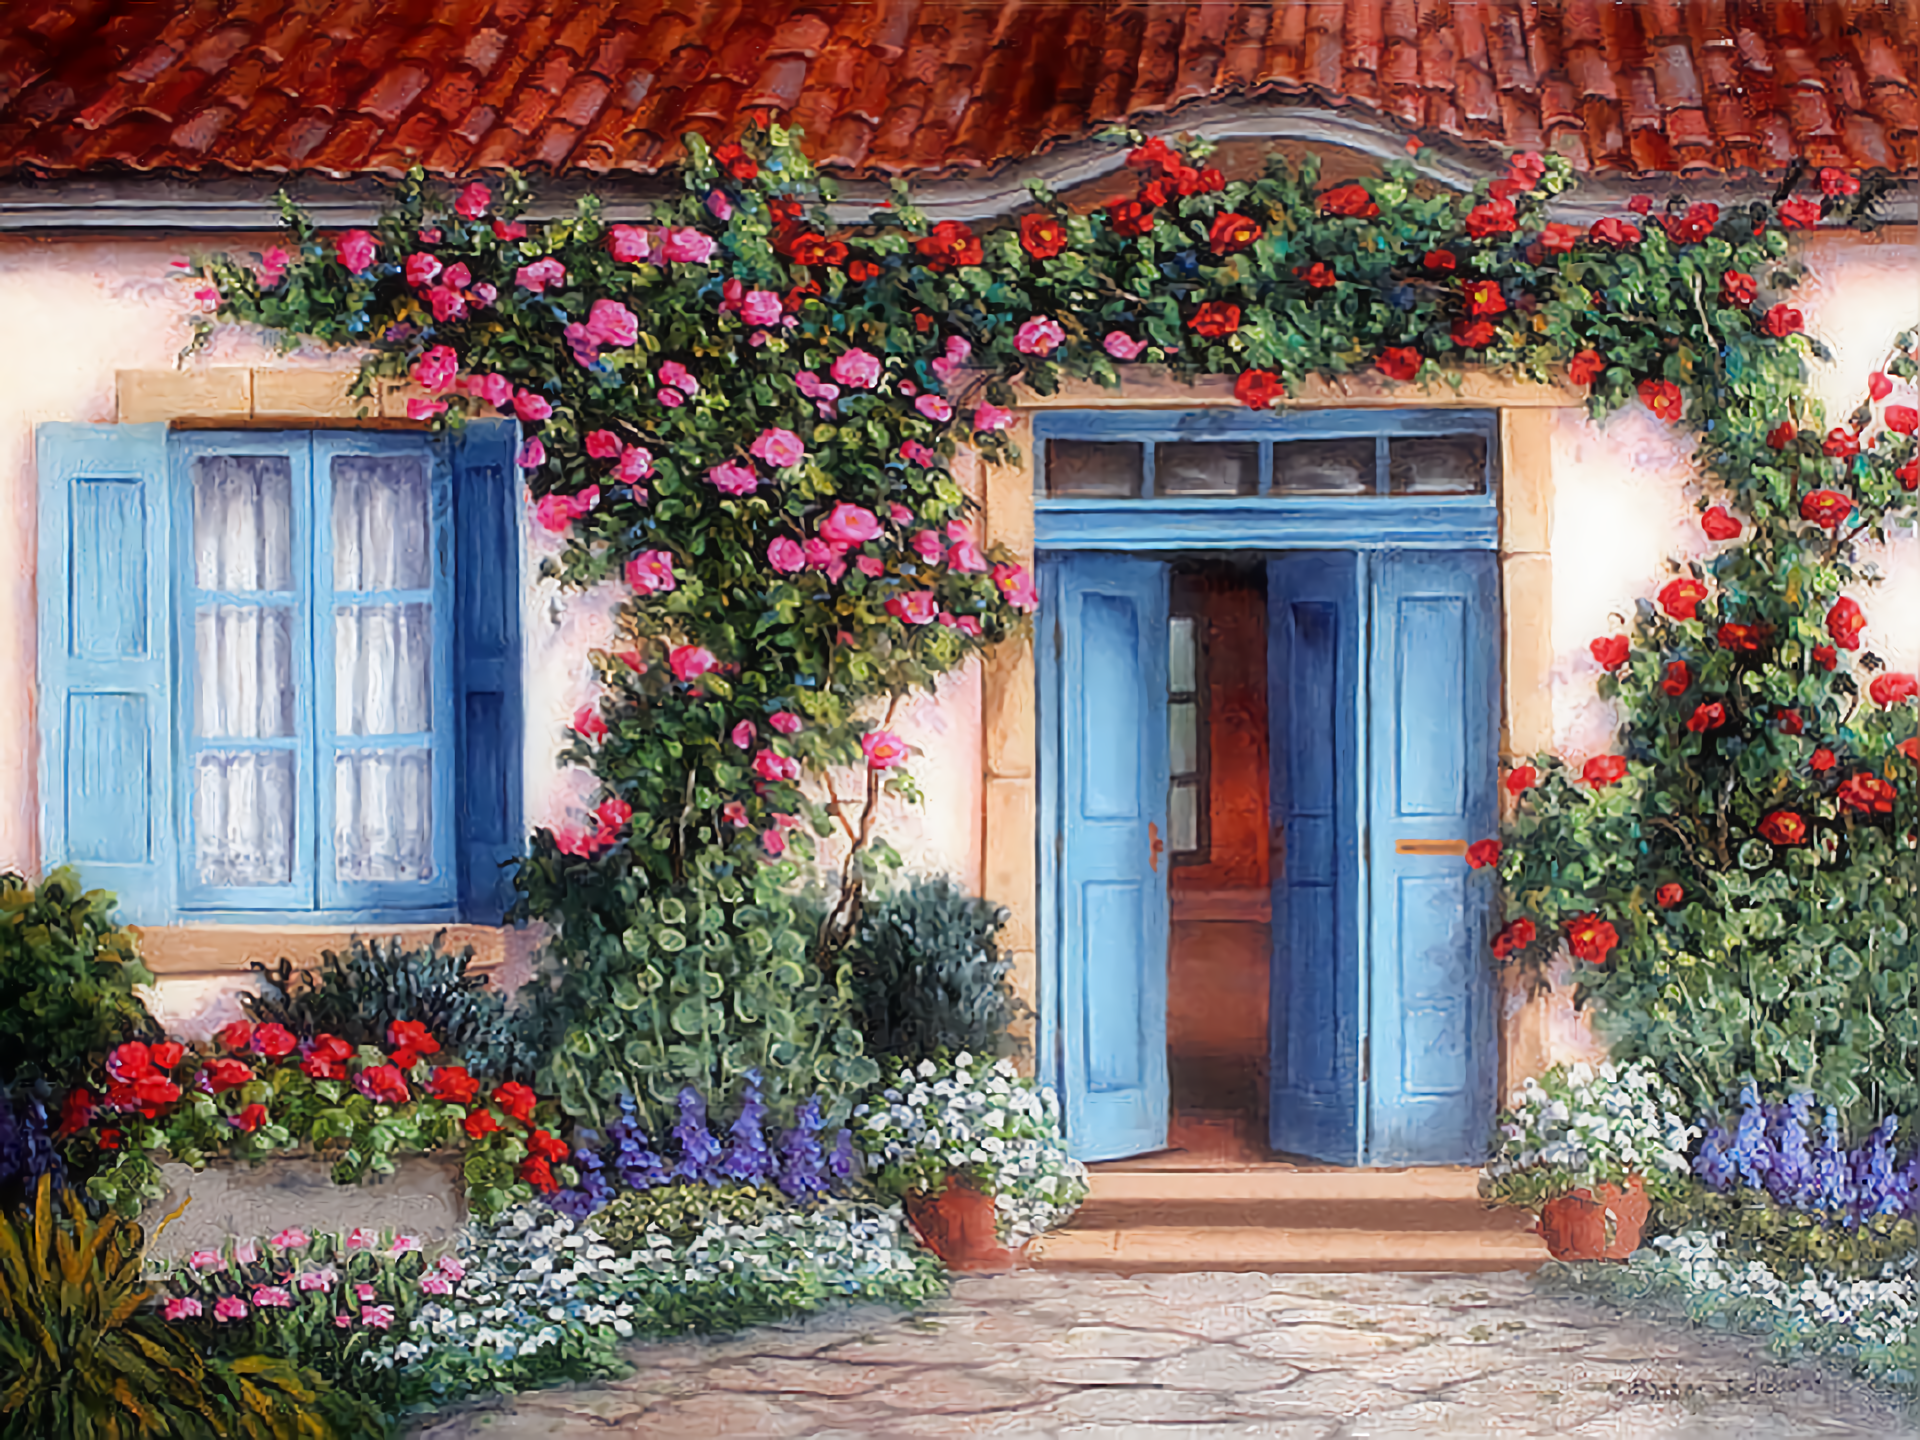 Cute House With Flowers Hd Wallpaper Background Image 1920x1440